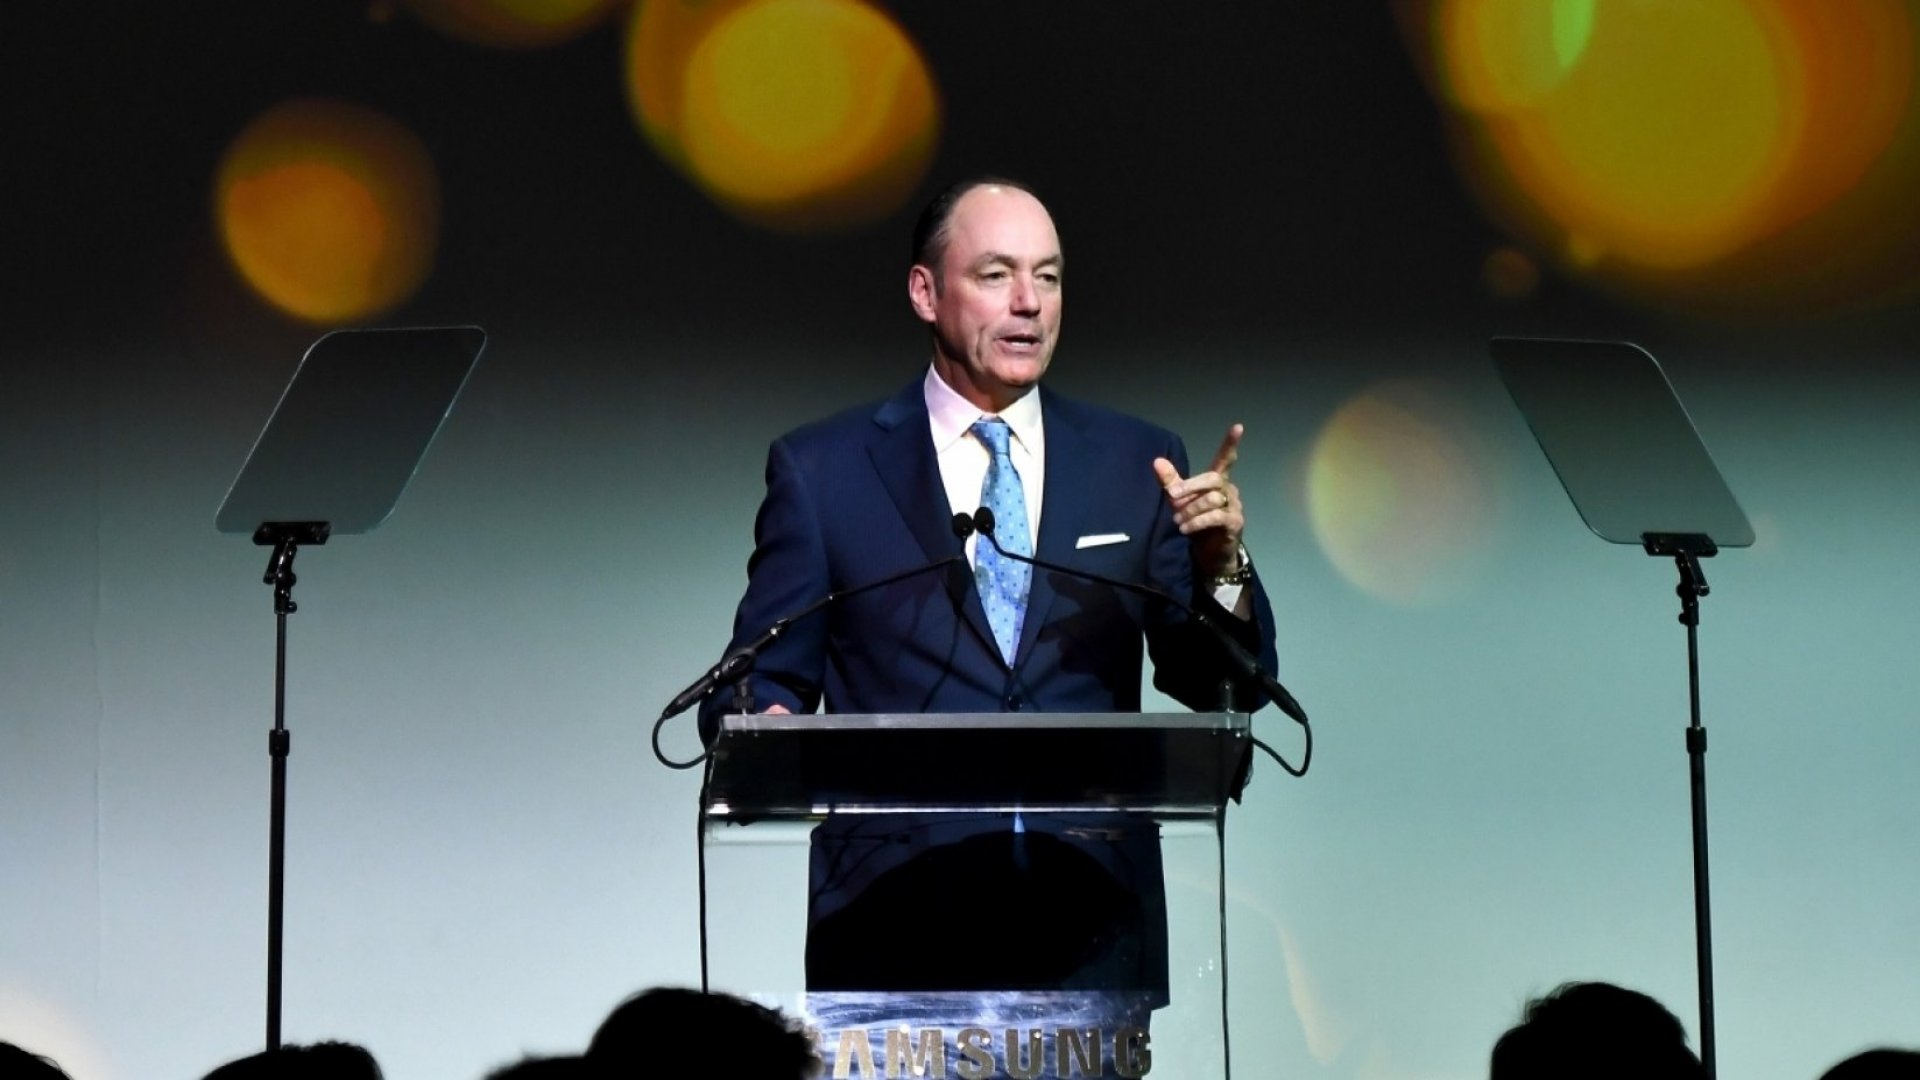 President and CEO Samsung Electronics North America Tim Baxter speaks onstage during the Samsung annual charity gala 2017